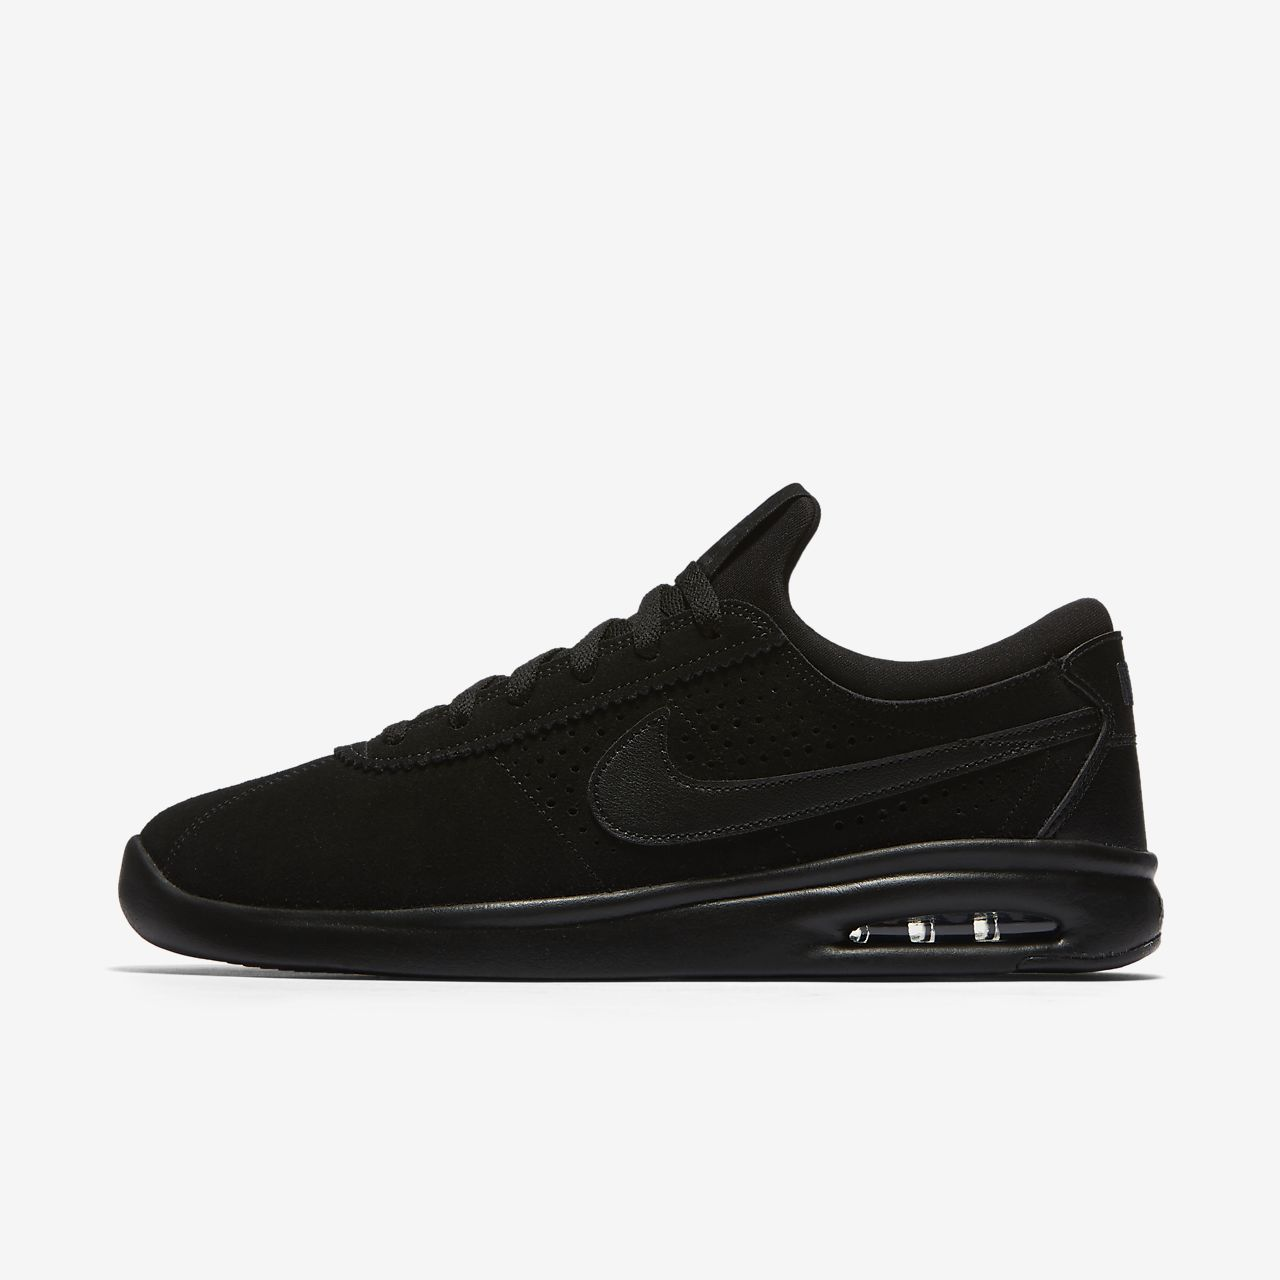 Chaussures Nike SB Collection noires Skater homme ikV9oYuzyK